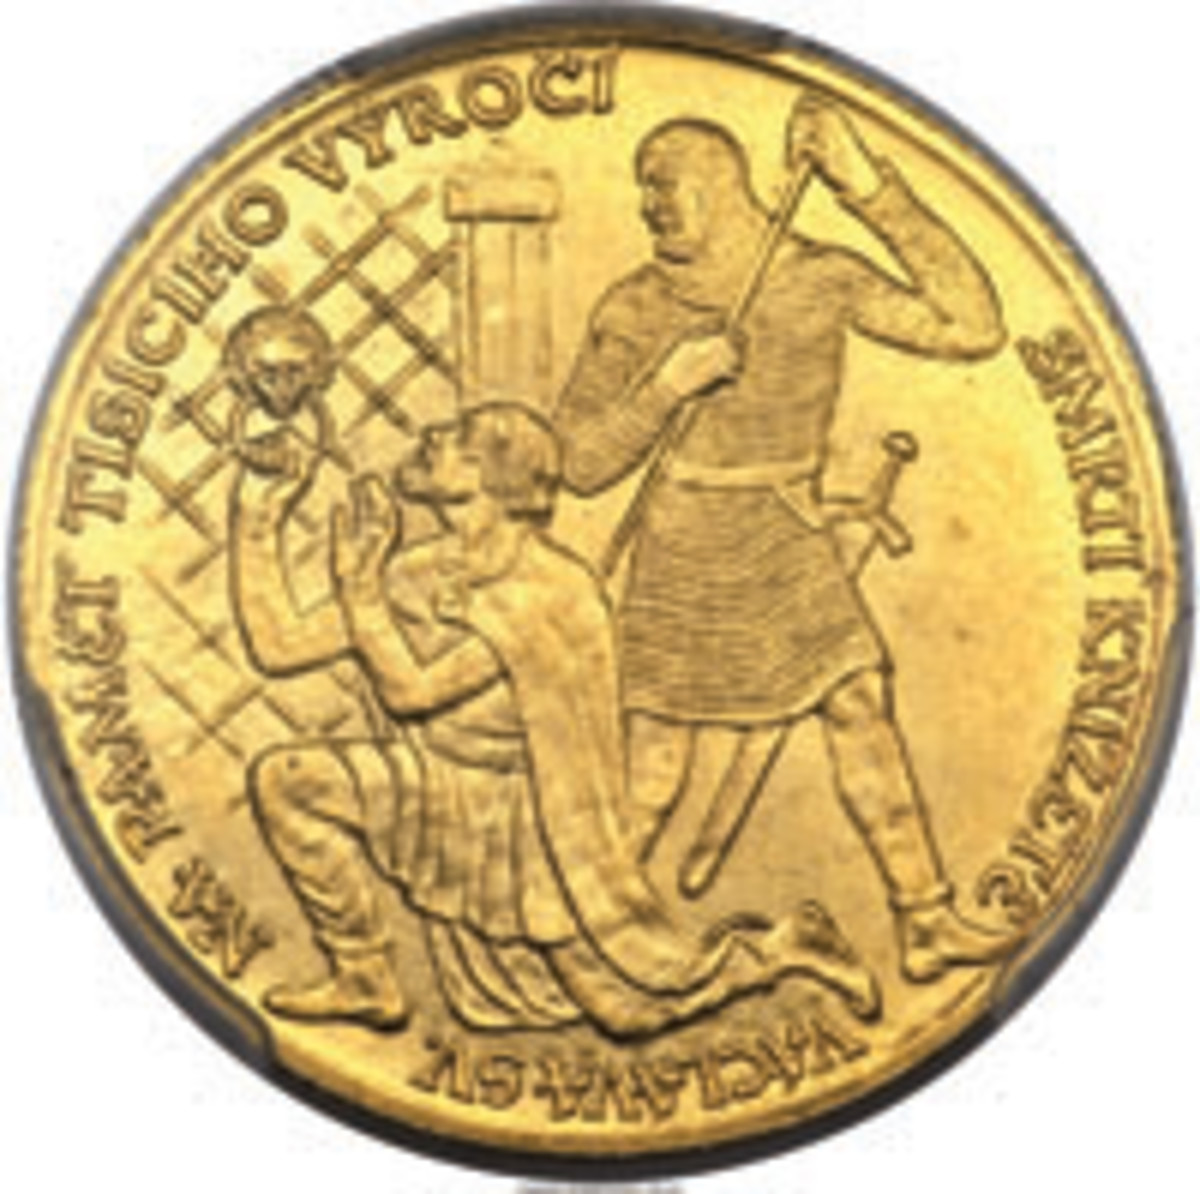 'Murder most foul' and on church steps no less. Wenceslas is assassinated with a lance by his brother Boleslaus the Cruel on the obverse of this medallic gold 3 dukátu struck in 1929 (KM-XM10). (Image courtesy www.ha.com)